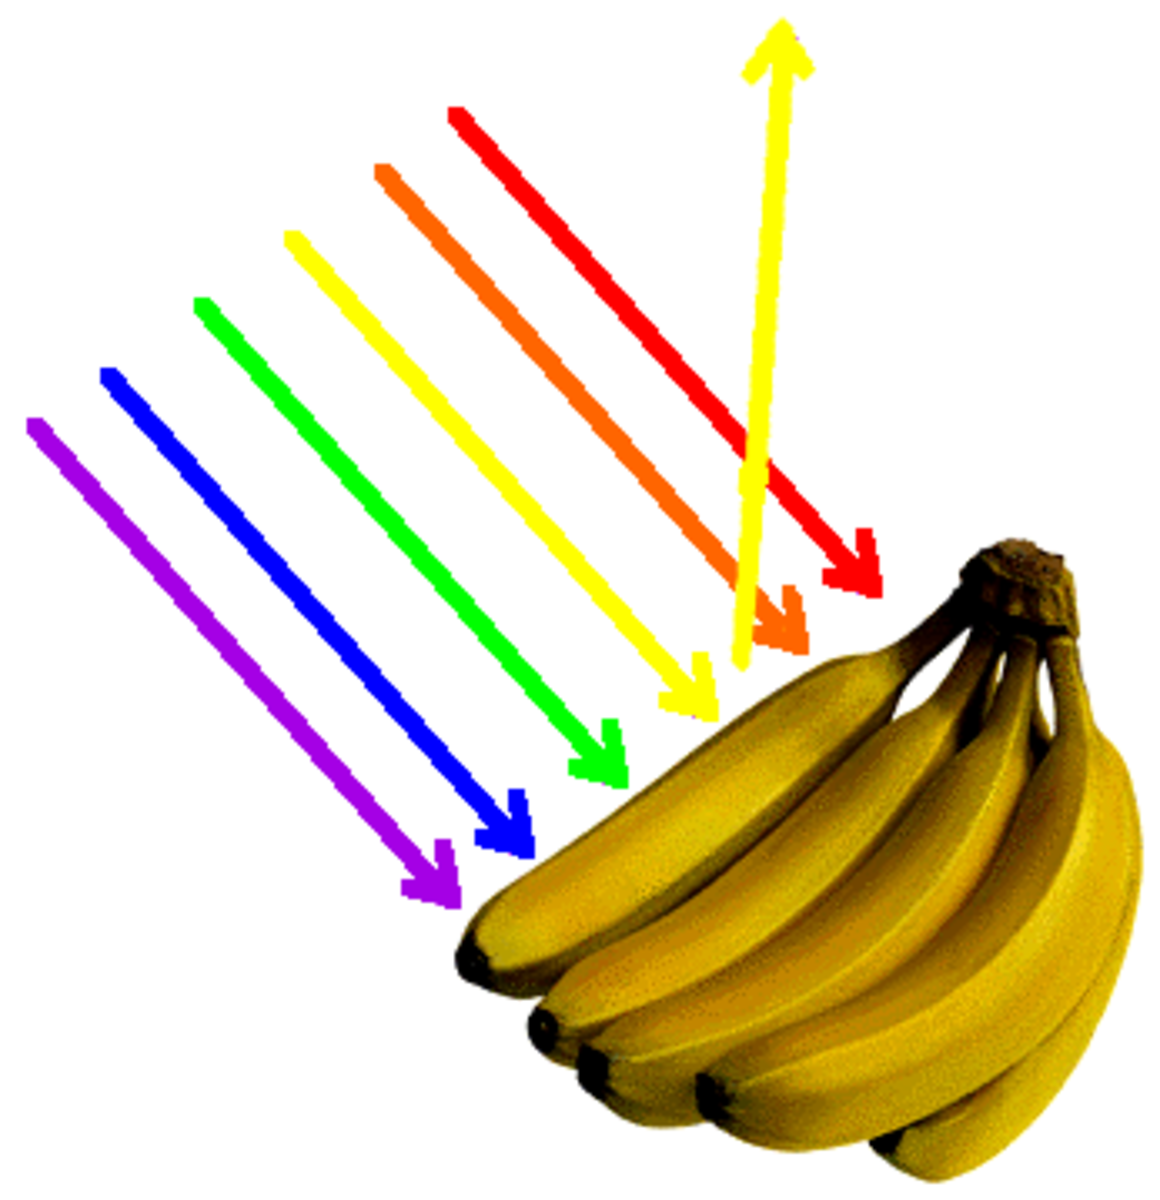 Yellow bananas appear yellow because only yellow wavelengths are reflected into our eyes. All other colour wavelengths are absorbed